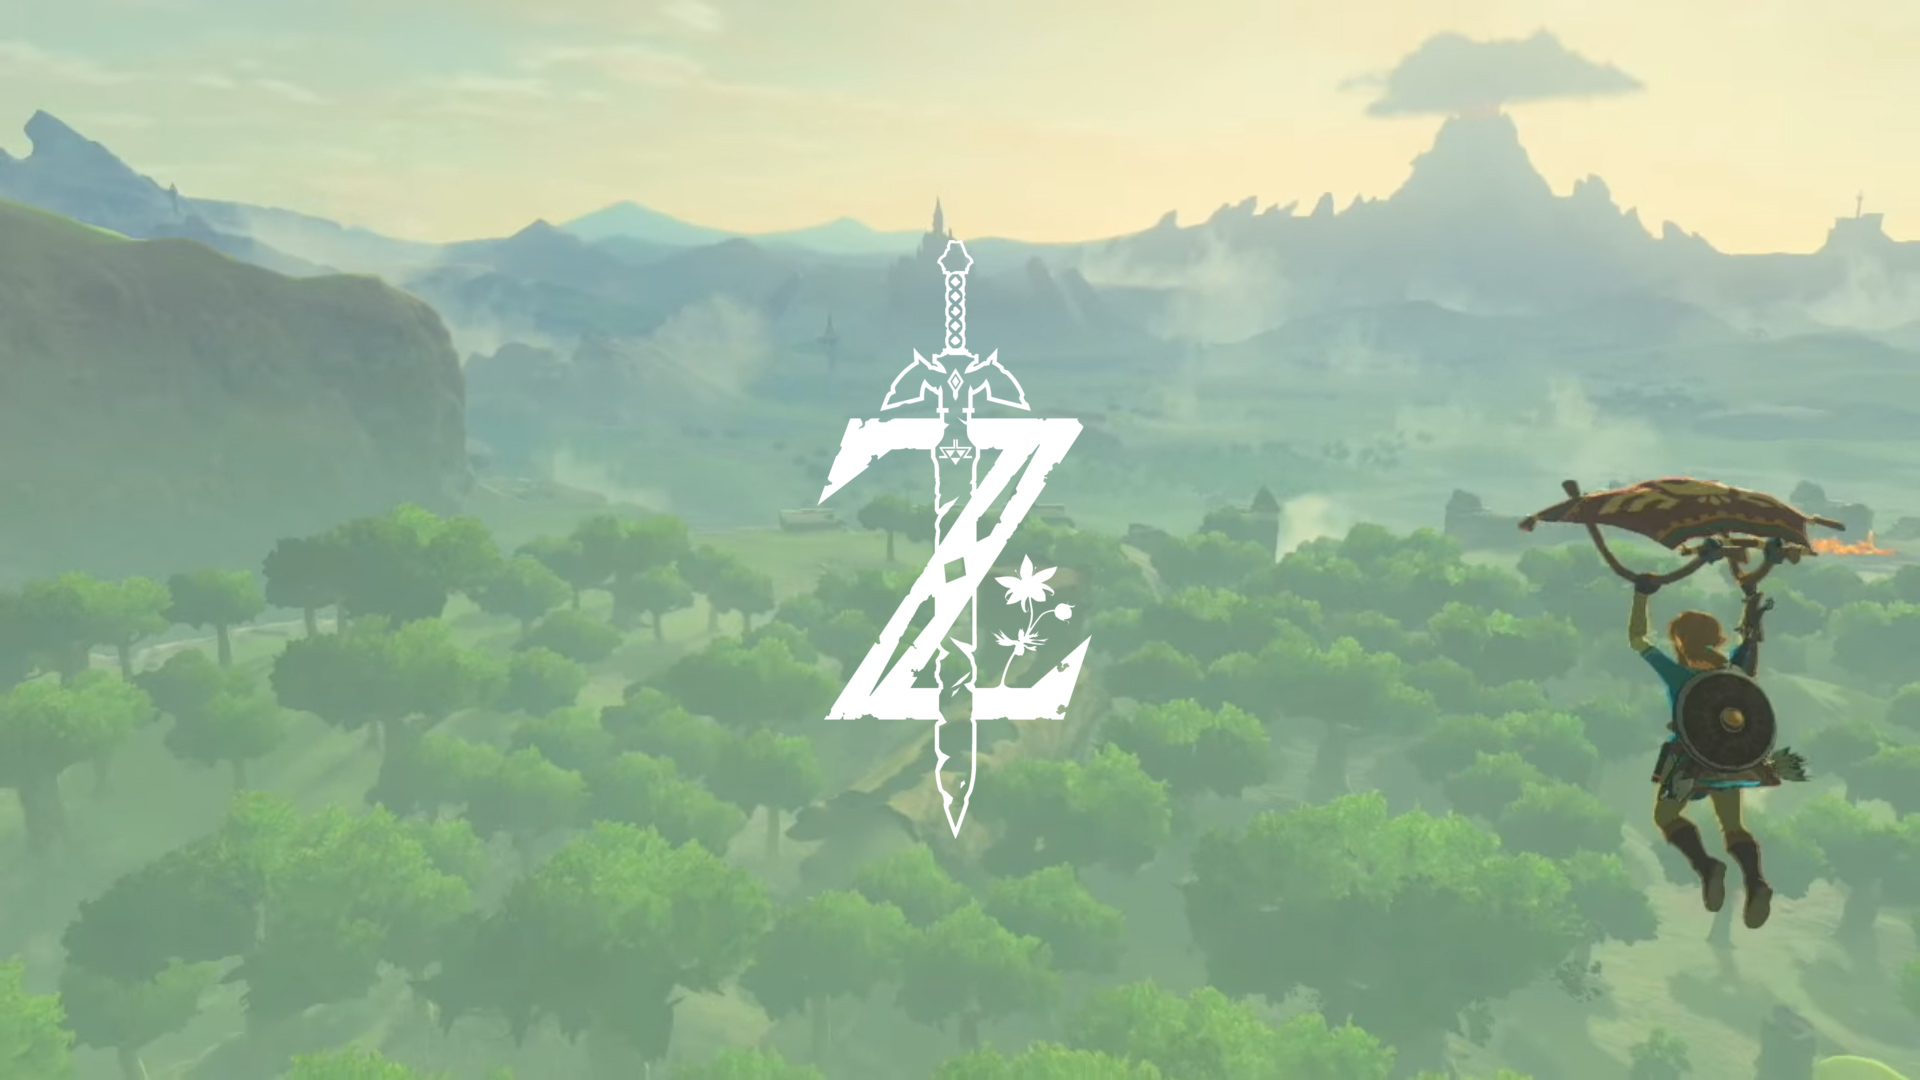 Breath Of The Wild Dual Monitor Wallpaper: The Legend Of Zelda: Breath Of The Wild Wallpapers